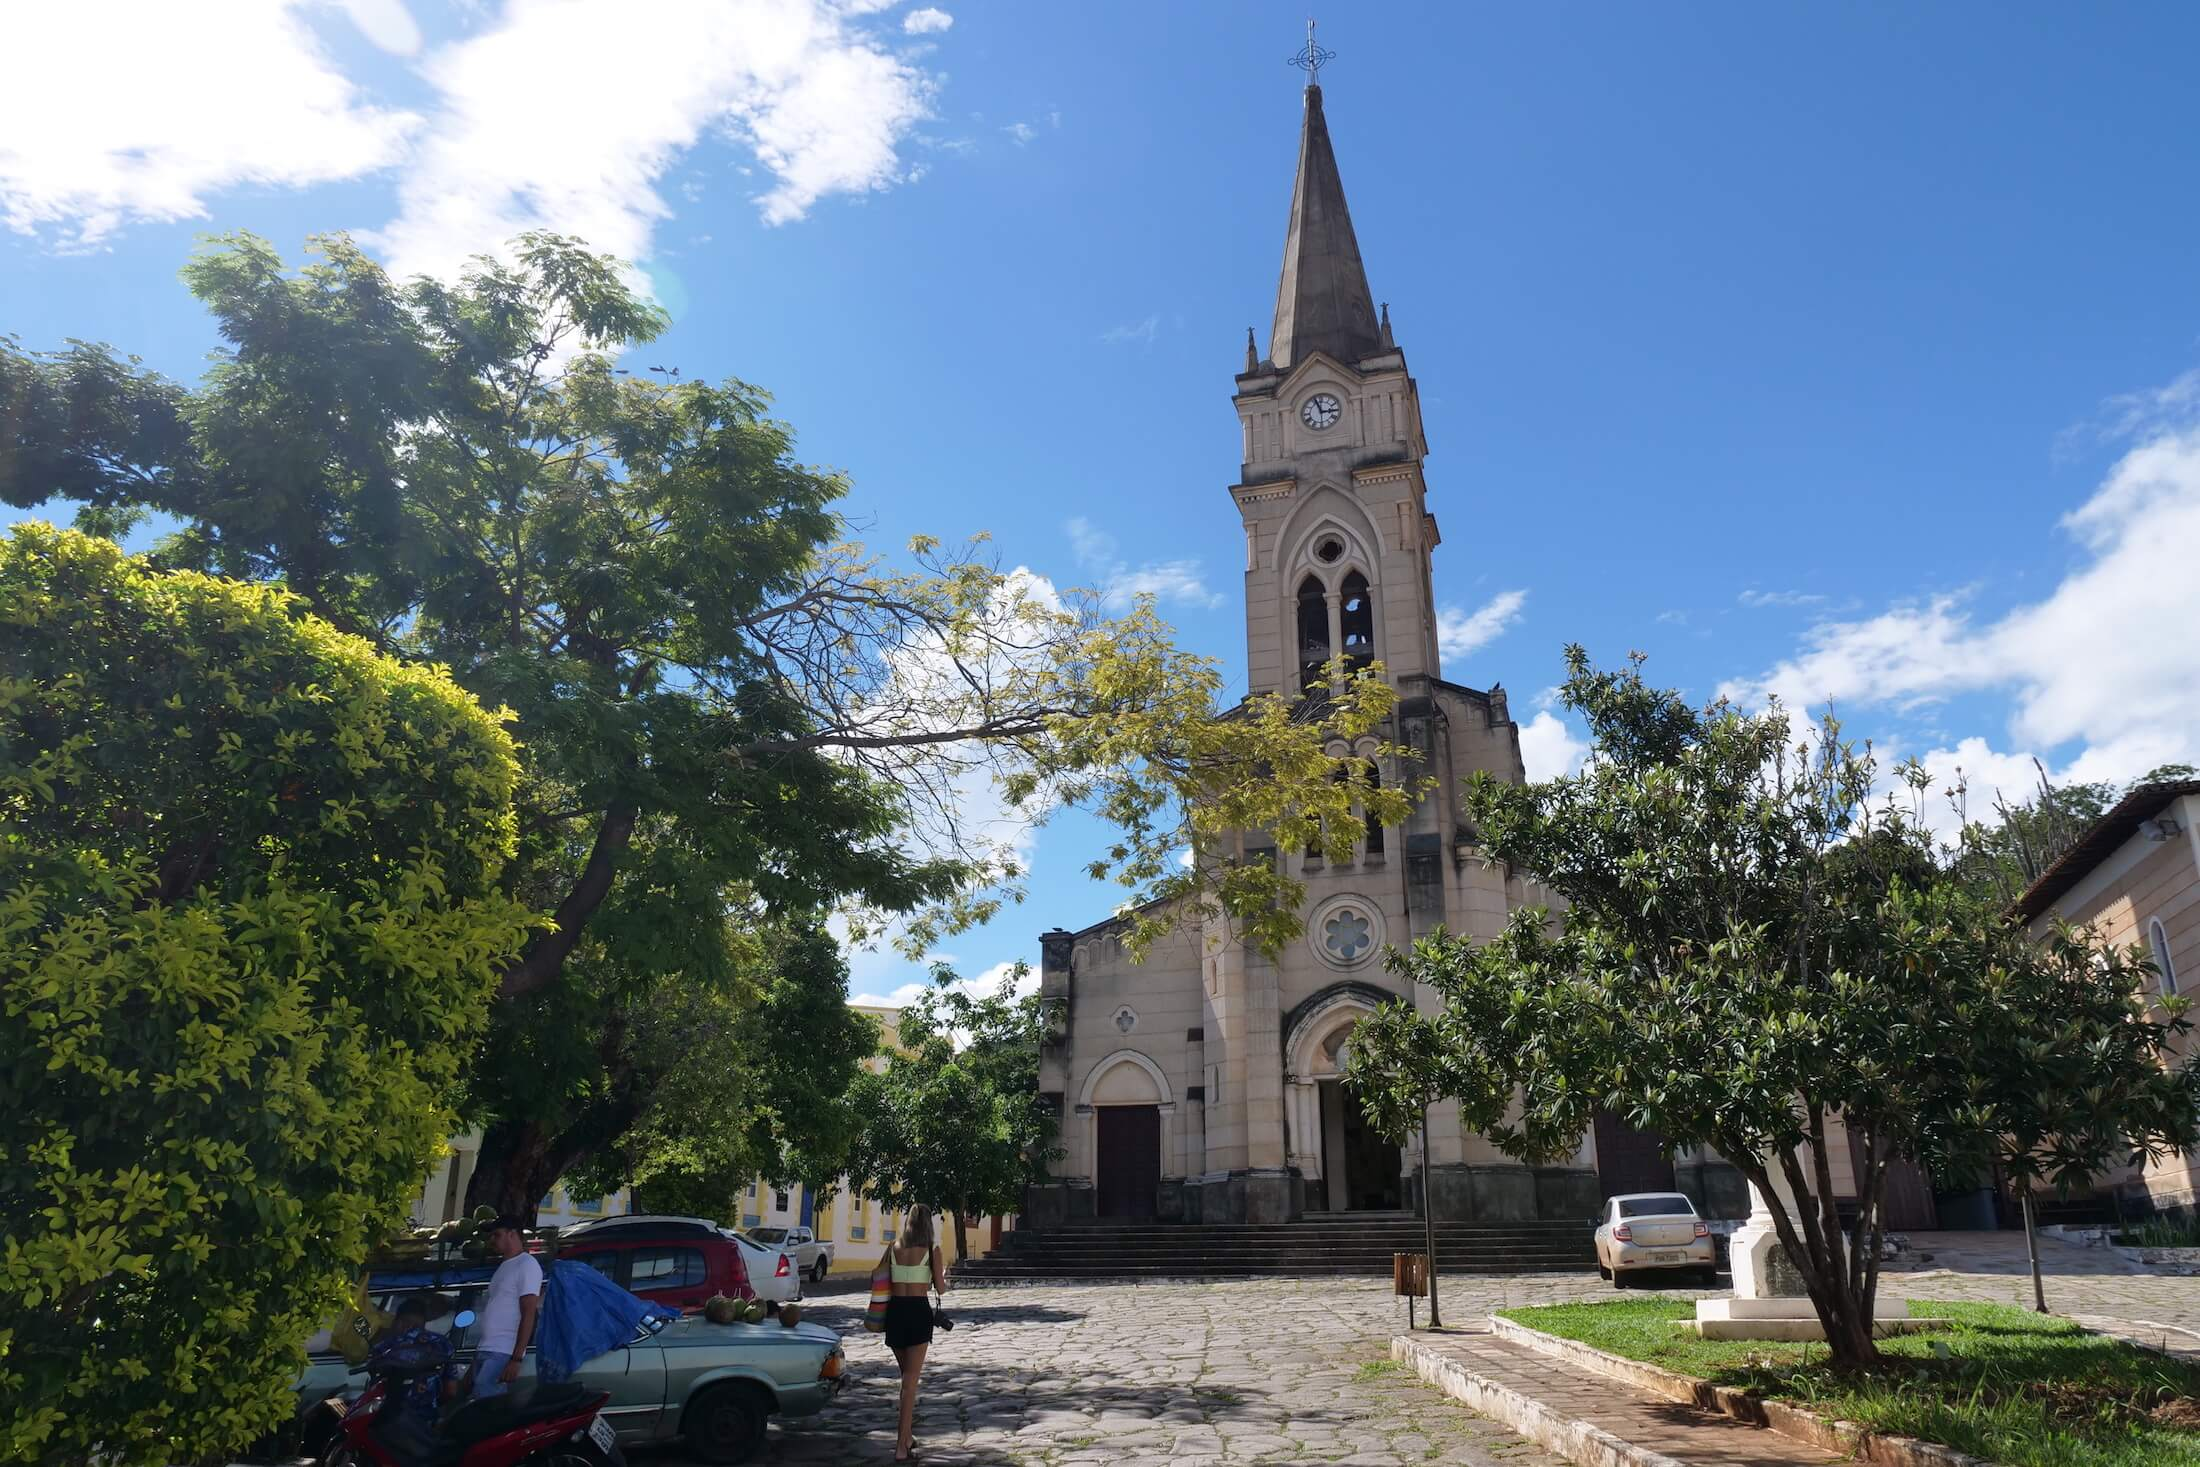 after Pequi, take a walk around the town of old Goiás.